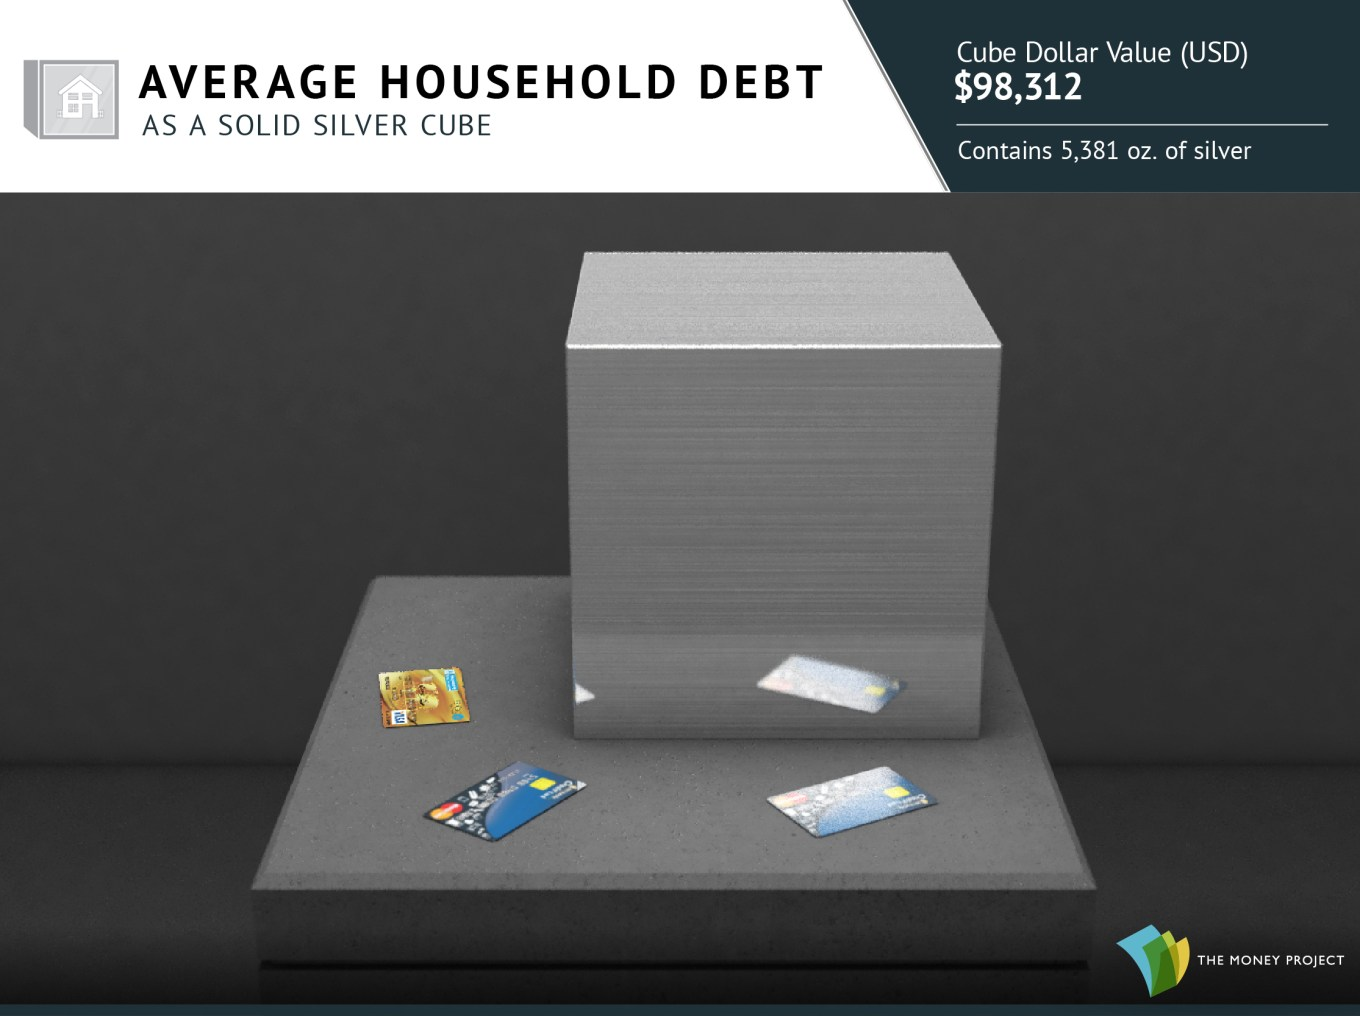 Average household debt as a silver cube